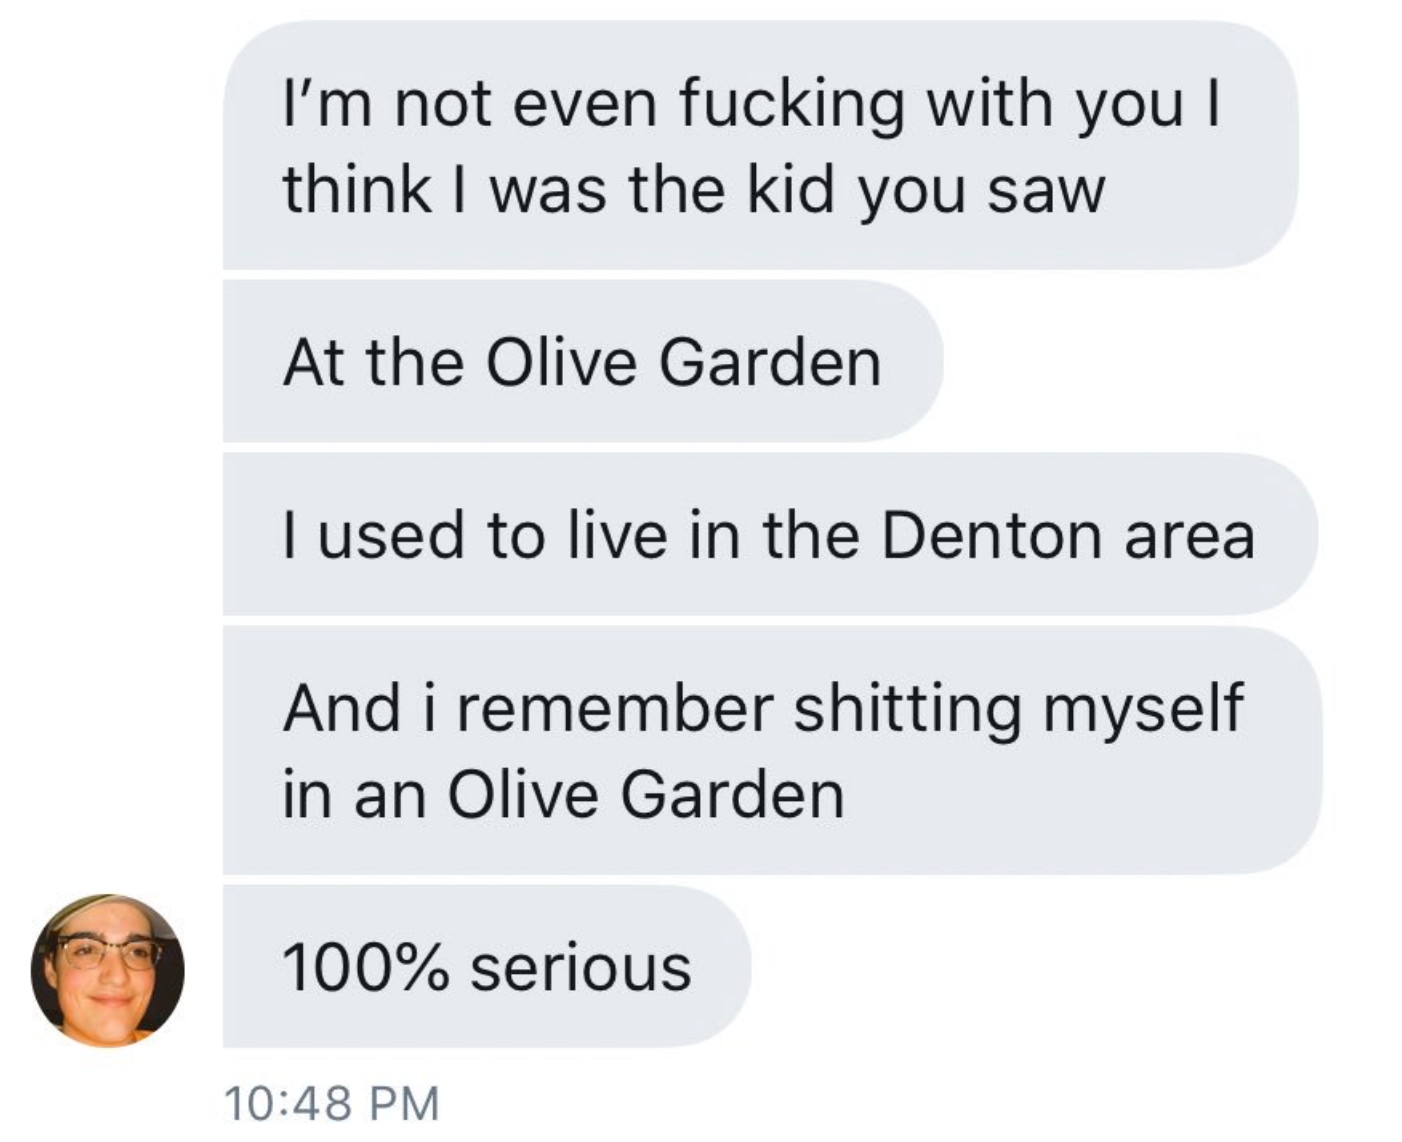 Girl Finds Boy Who Pooped His Pants In An Olive Garden In 2008 Due